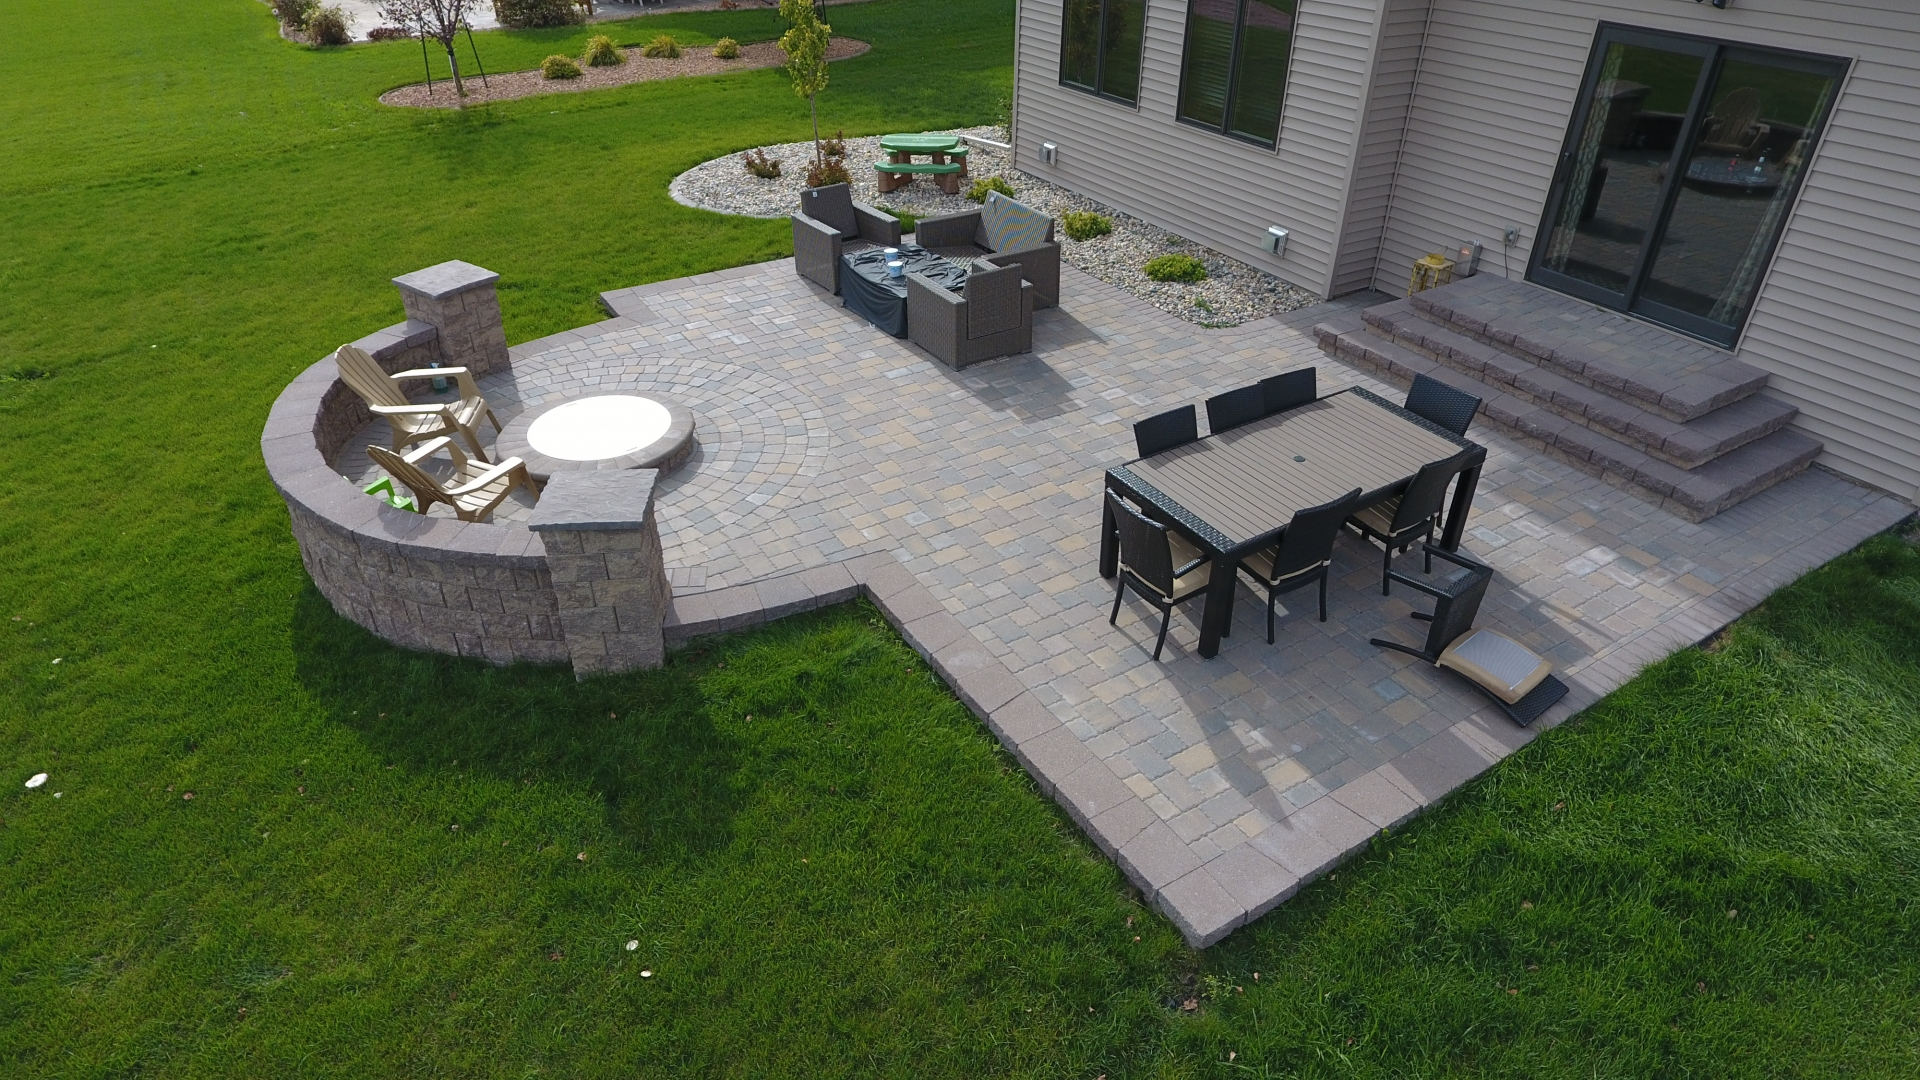 Backyard Fire Pit with Seat Wall and Paver Patio - Oasis ... on Paver Patio Designs With Fire Pit id=36929